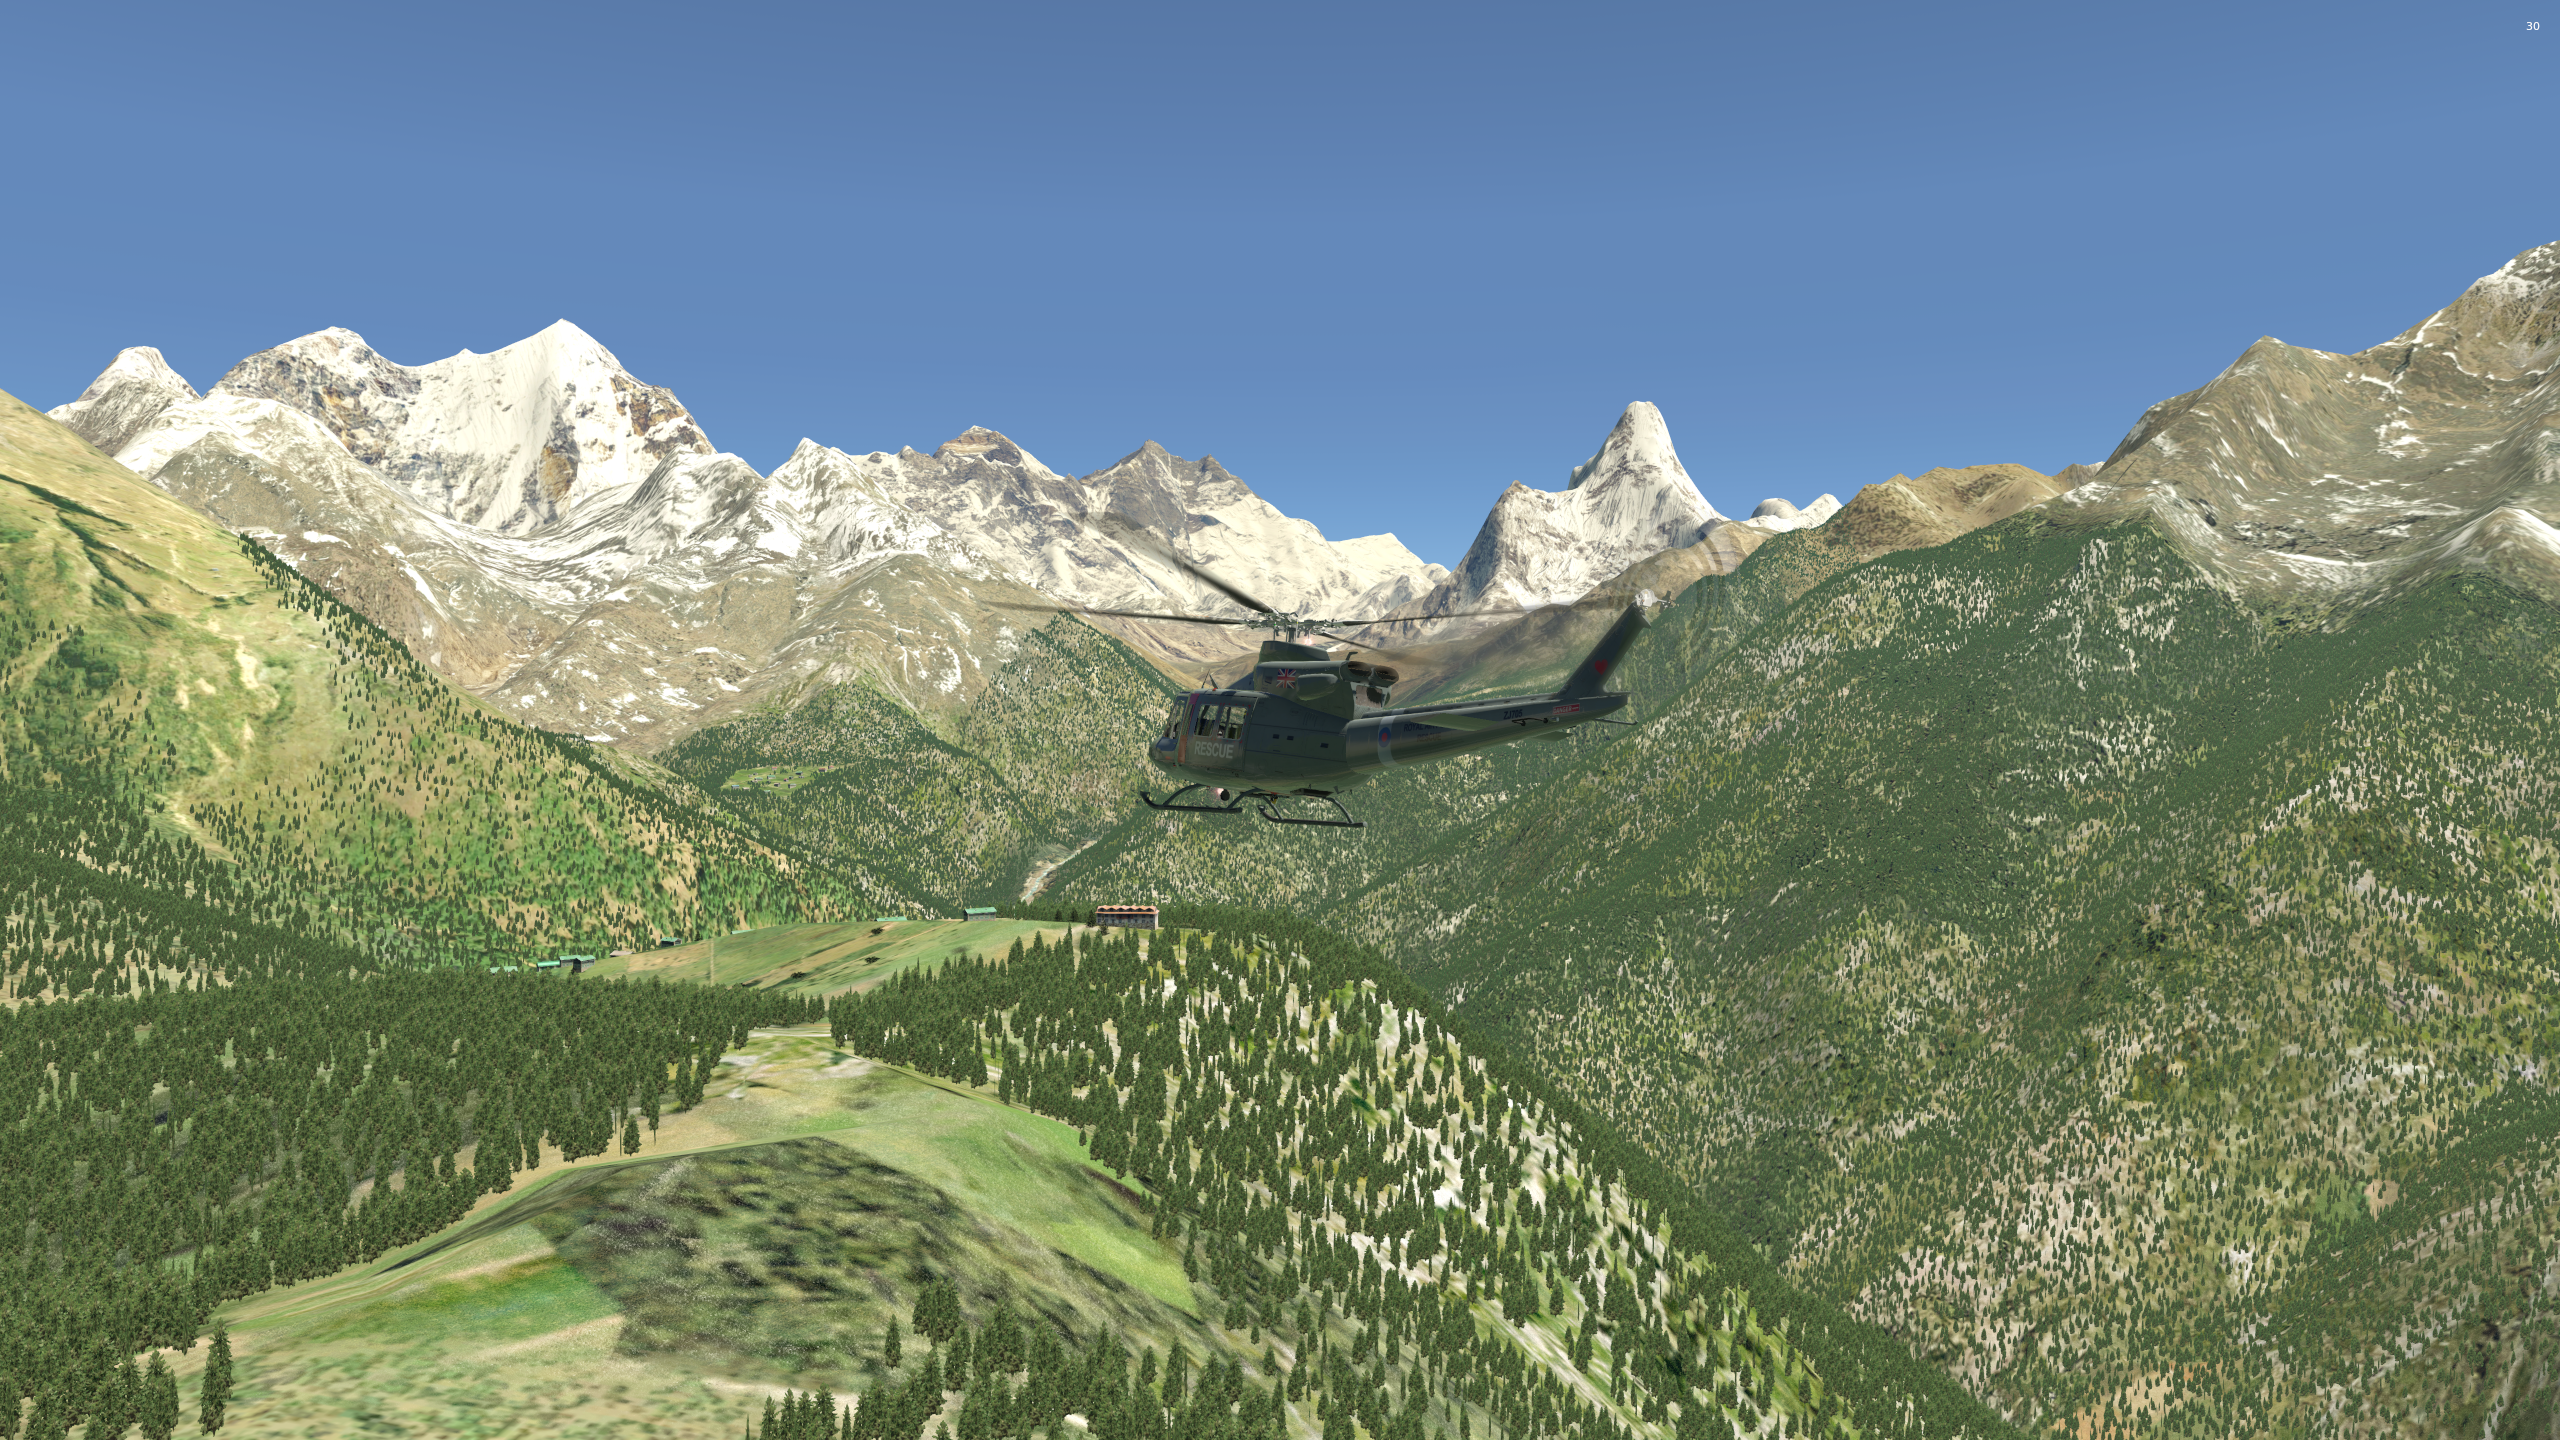 bell412-2019-05-2423.26kuo.png